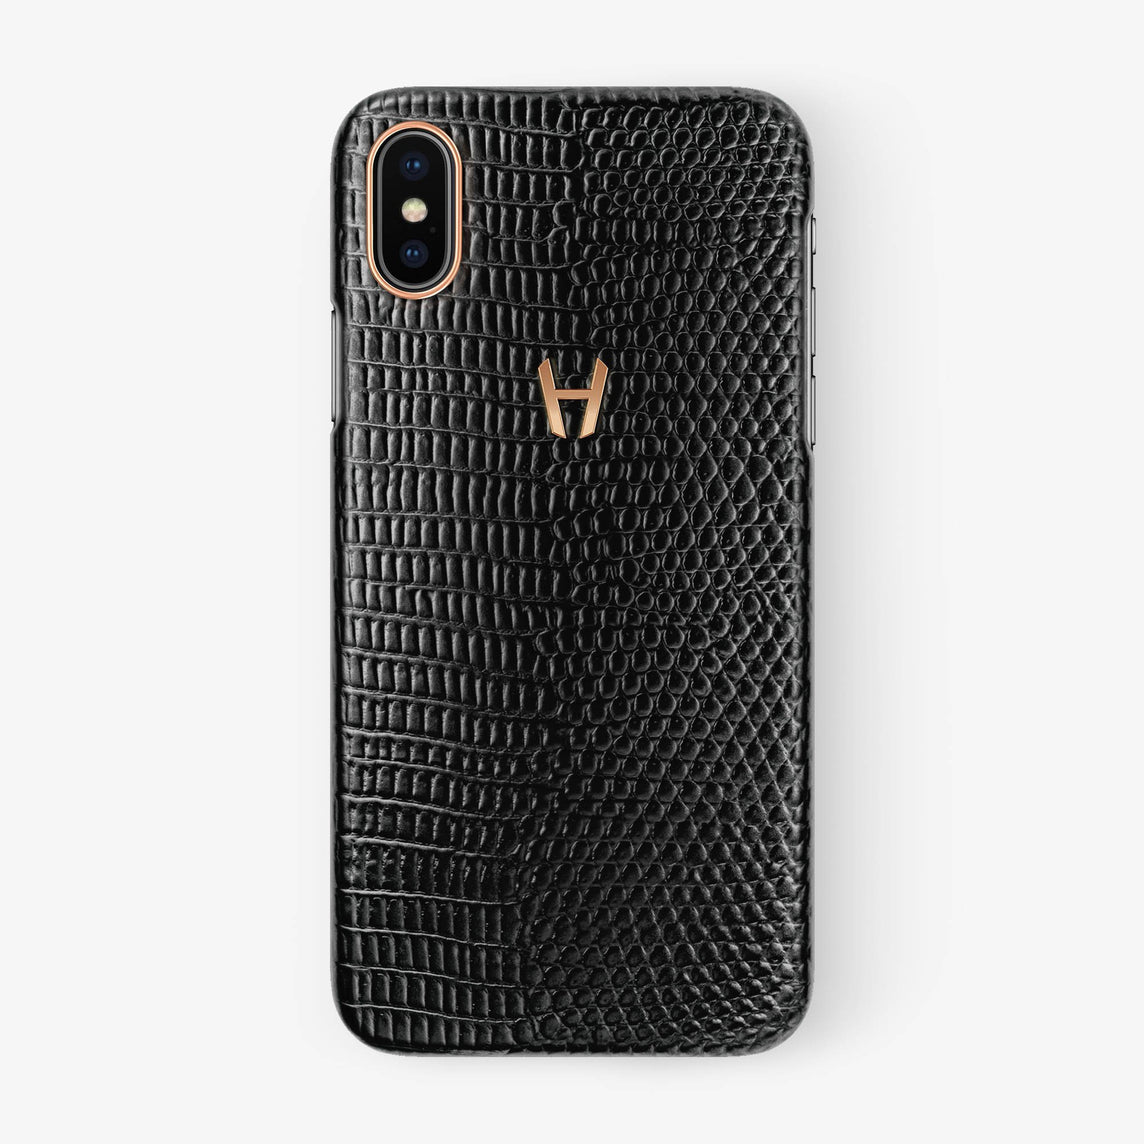 Lizard Case iPhone X/Xs | Black - Rose Gold withouth-personalization